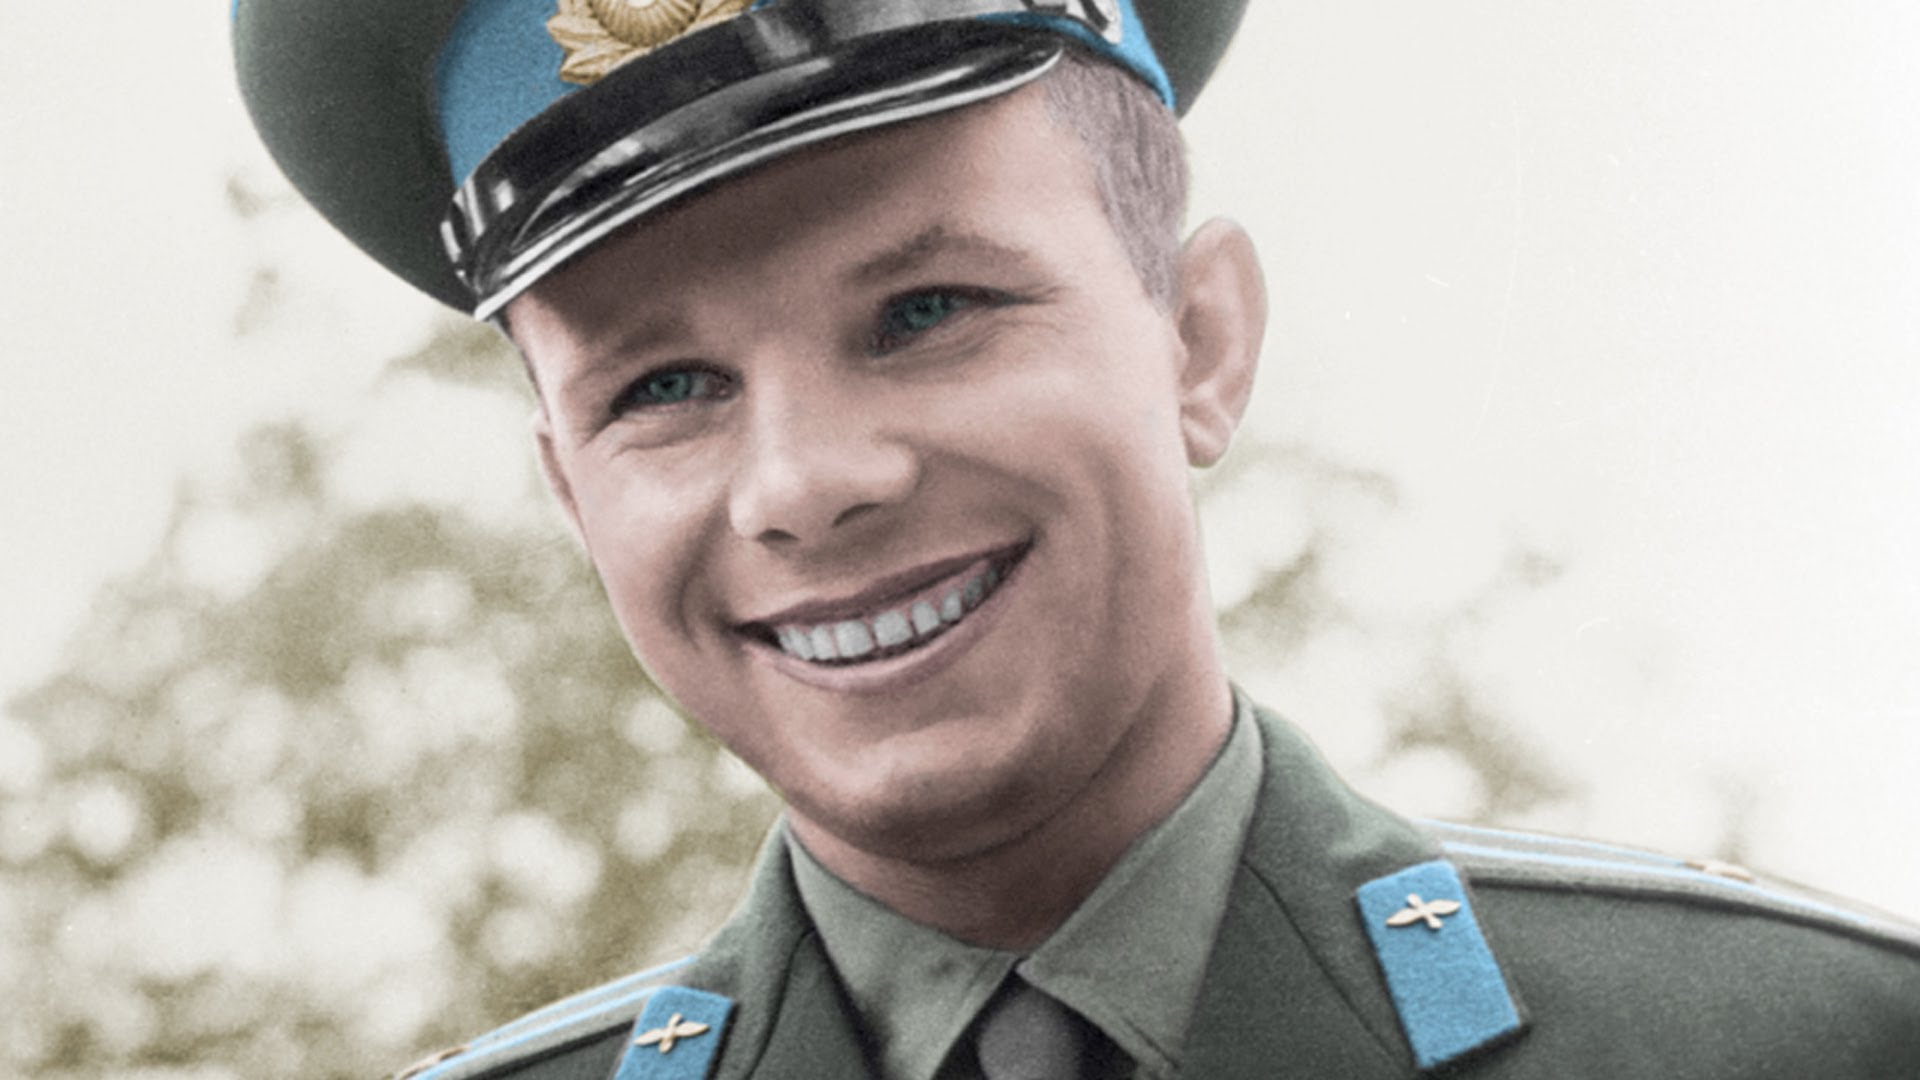 Yuri Gagarin Wallpapers hd